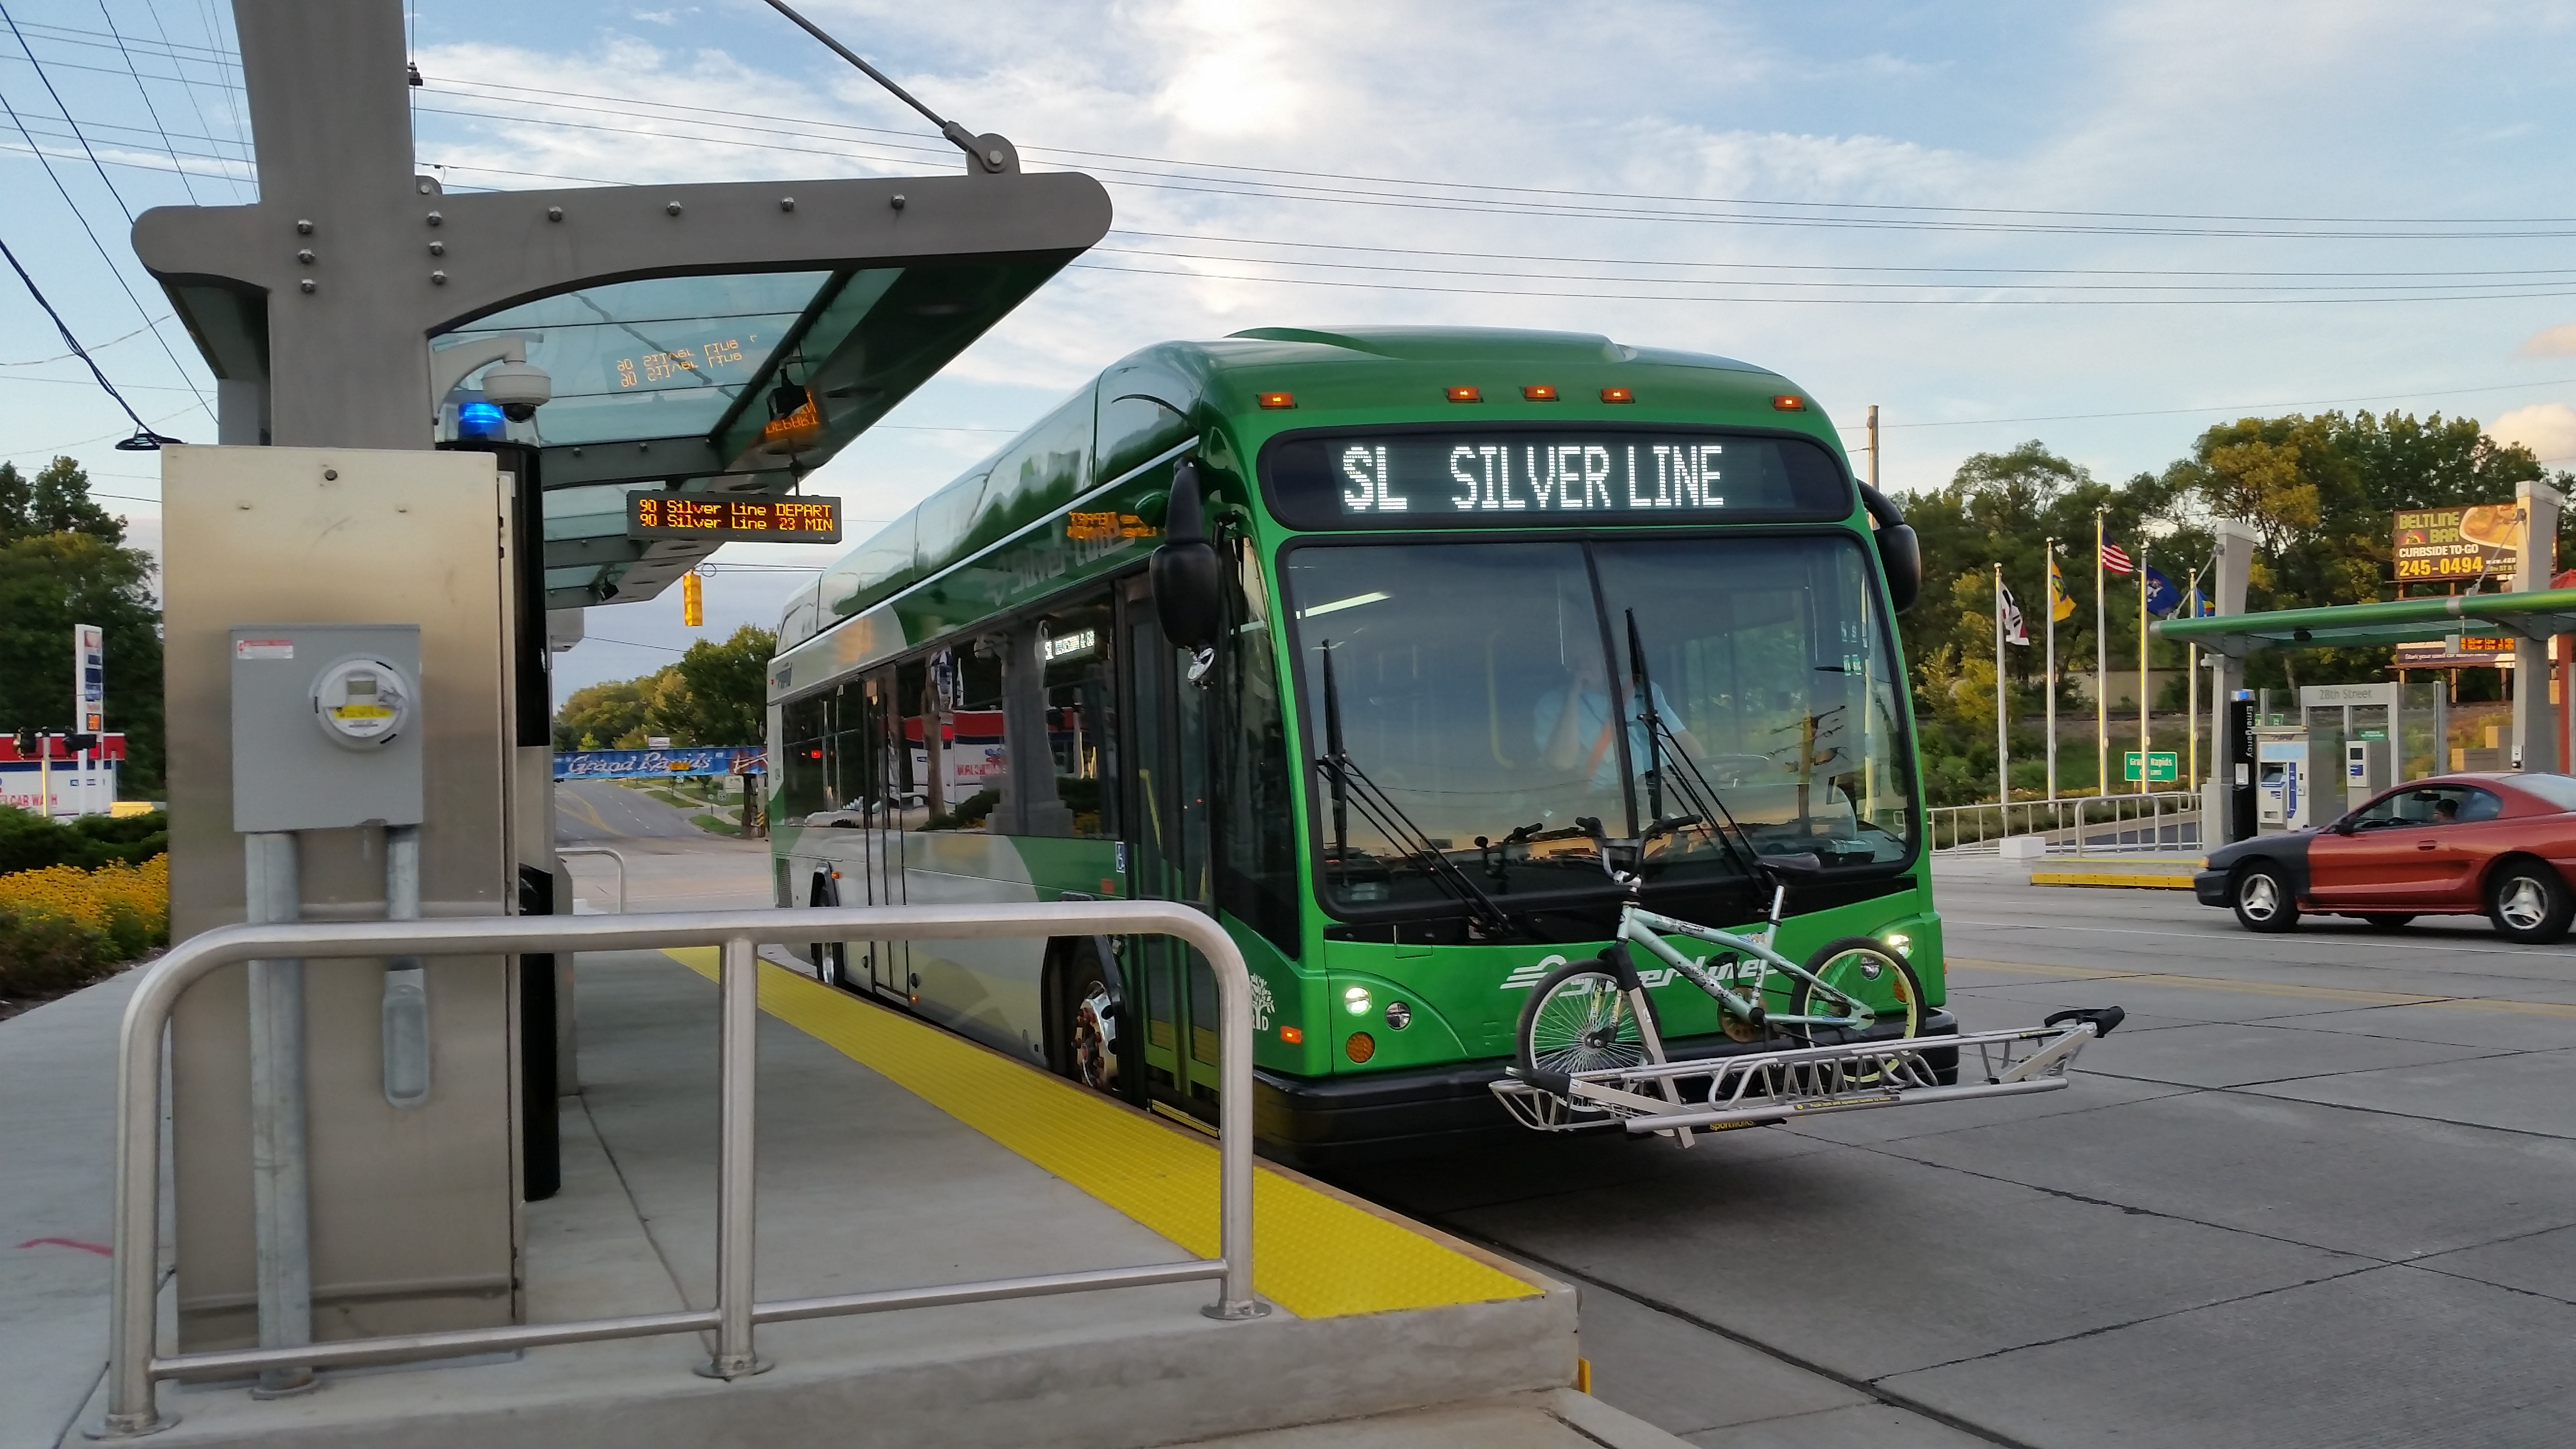 The Silver Line departing from a station.